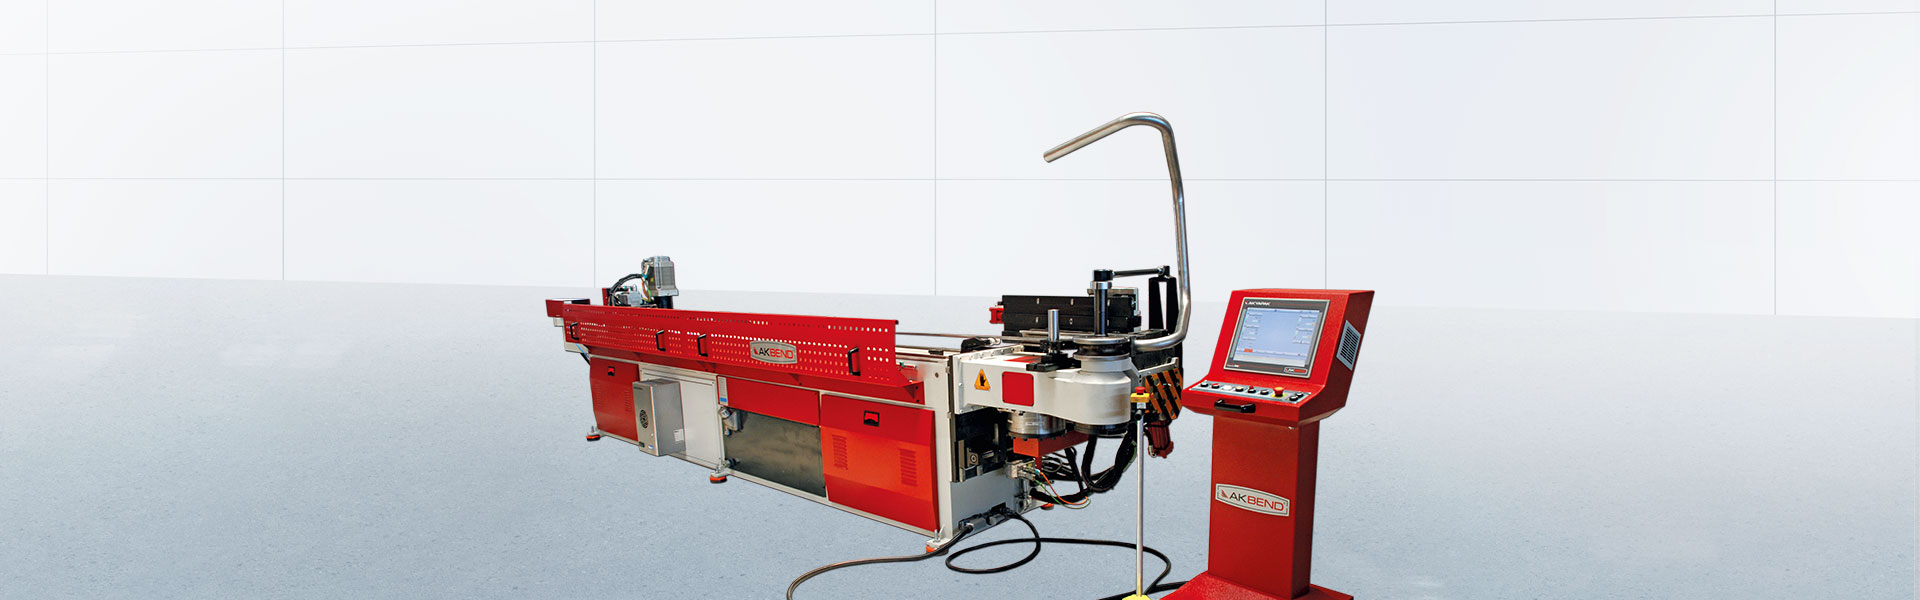 ABM 50 CNC Tube Bending Machine